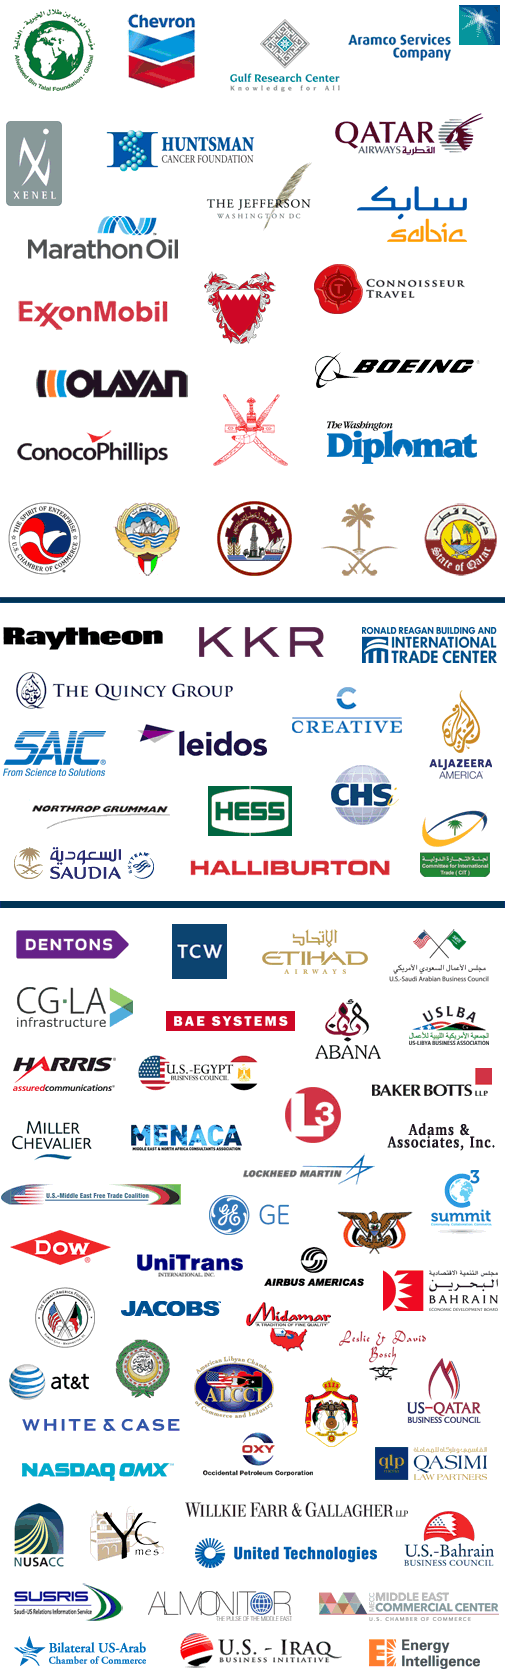 2014 Arab-U.S. Policymakers Conference Sponsors